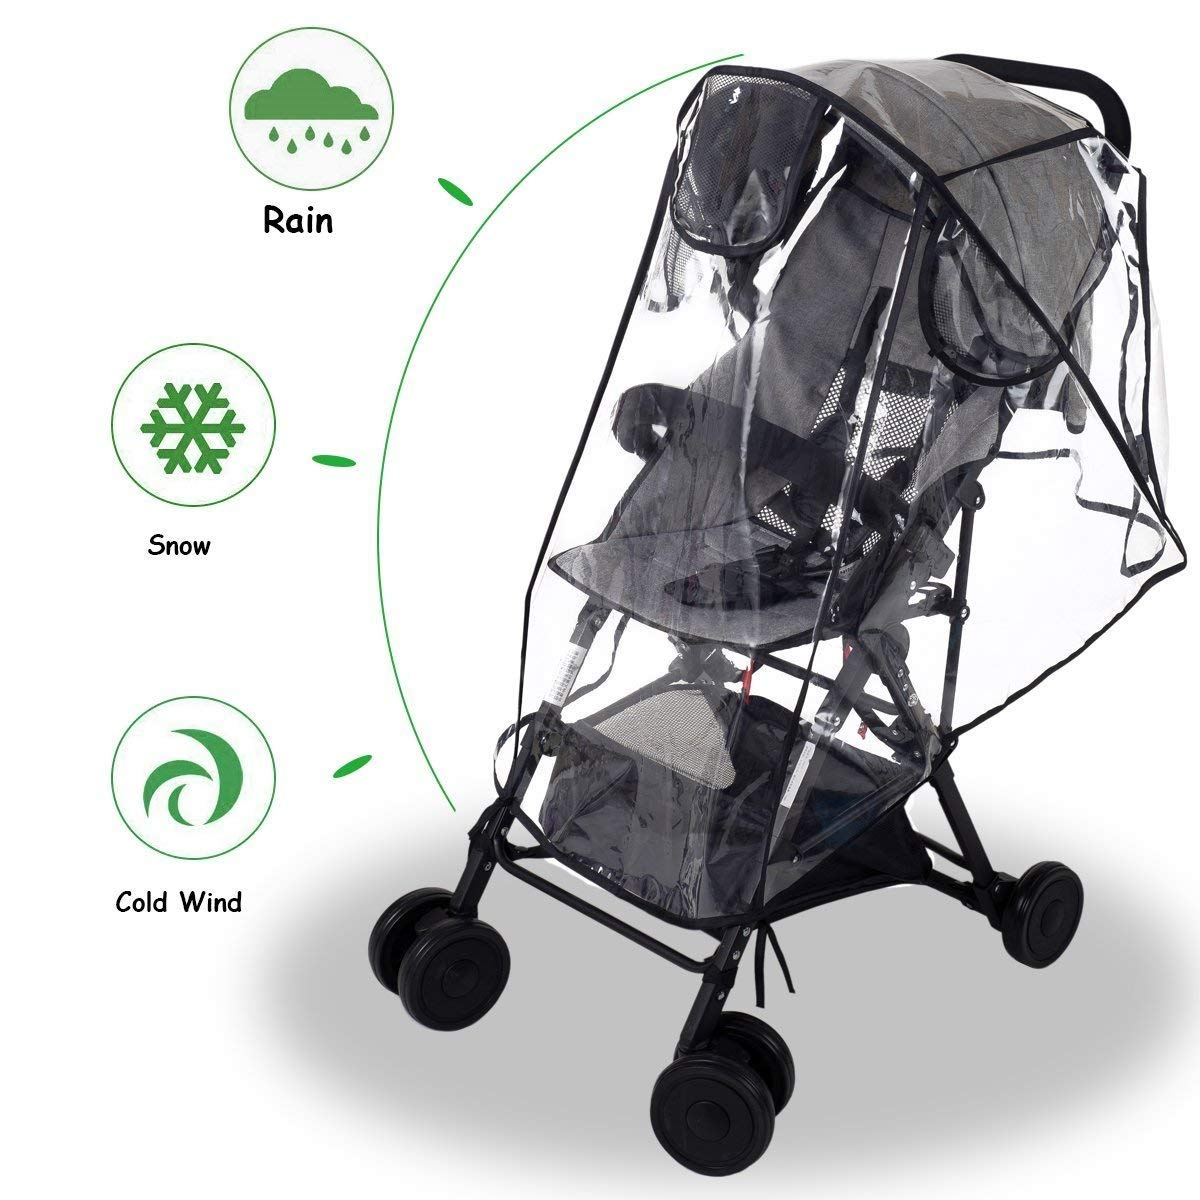 Wemk Stroller Rain Cover Universal, Weather Shield for Stroller Umbrella Pushchair, Ventilation EVA Material Non-Toxic odorless, Baby Care; Waterproof Wind Snowing Weather Shield (Medium) by Wemk